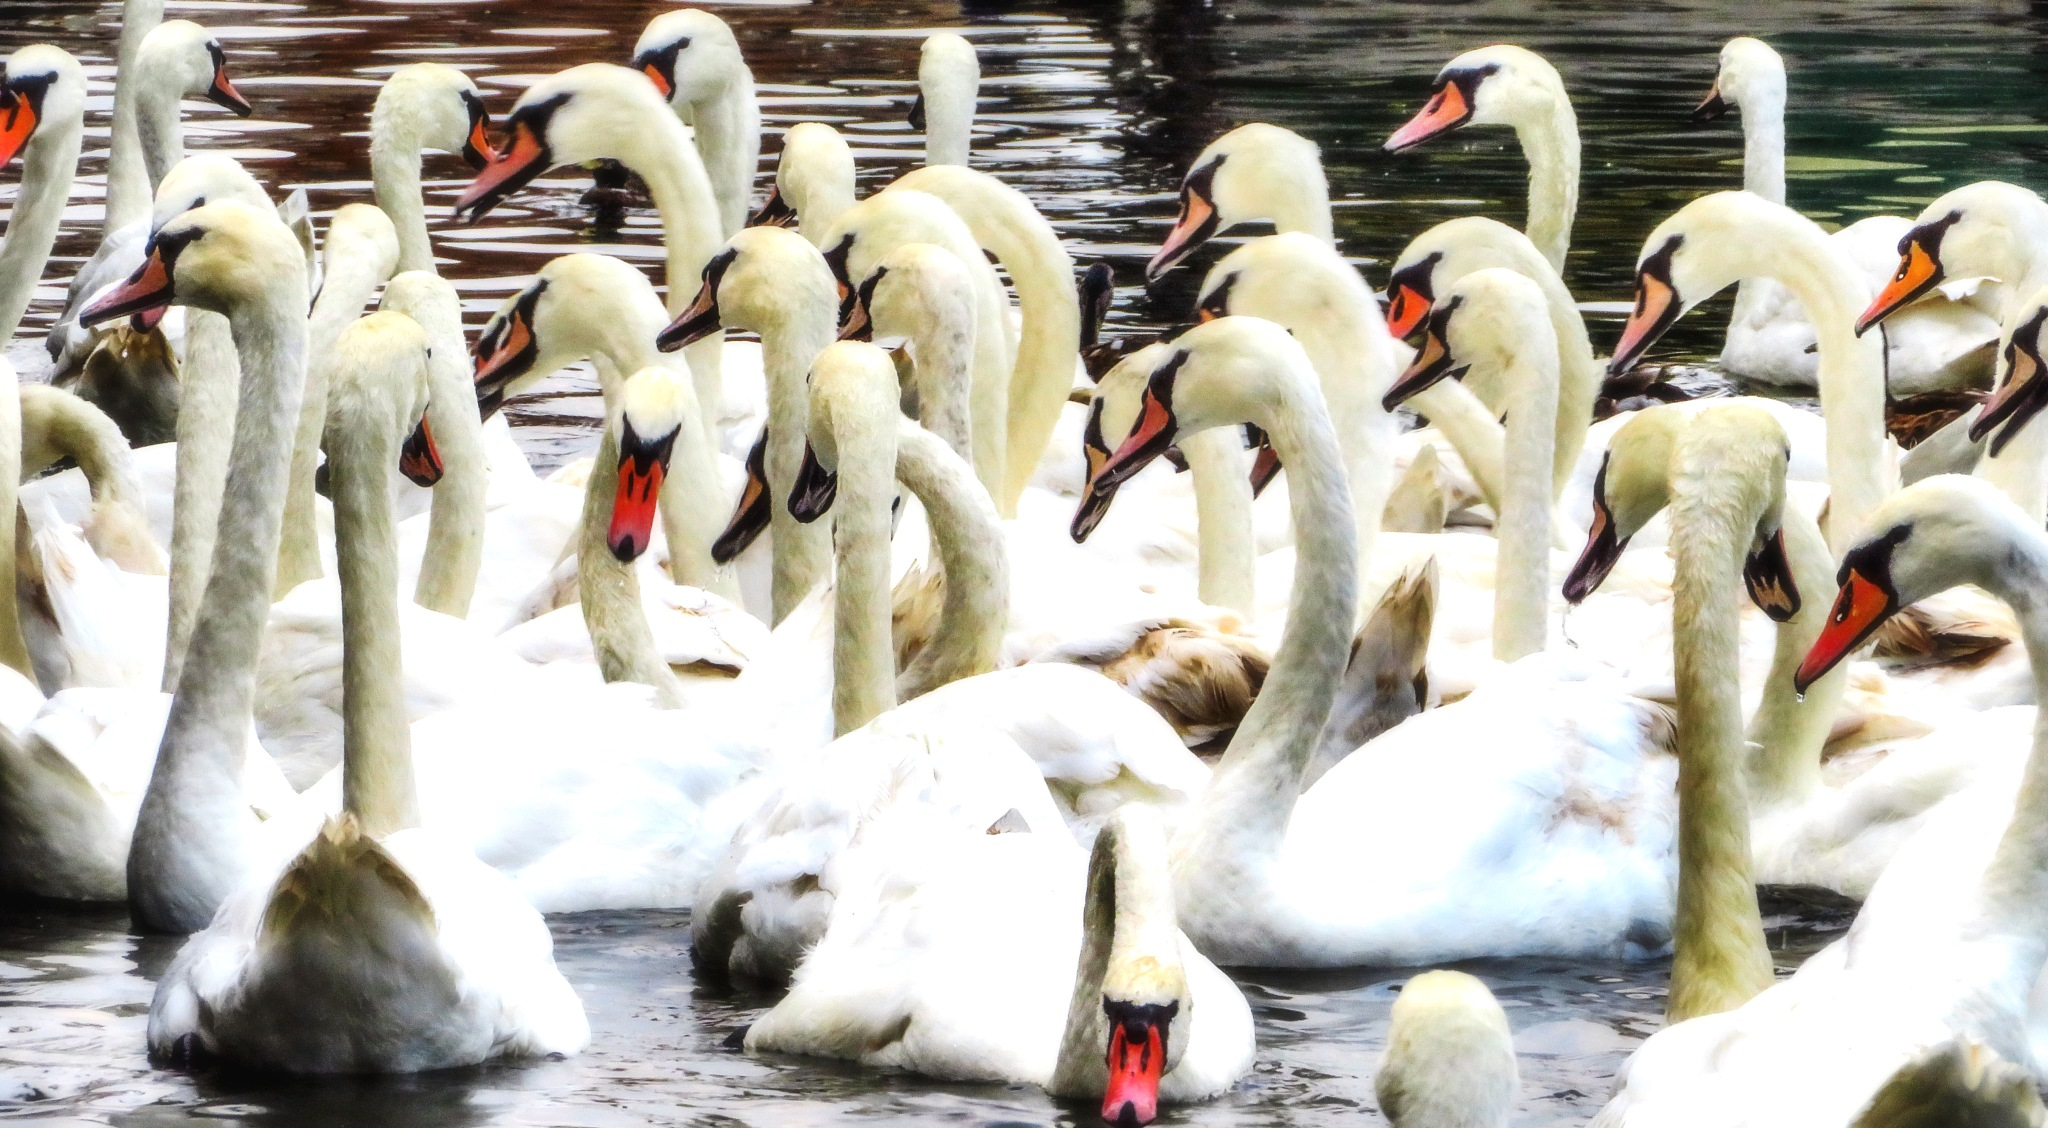 Swans by Charlie Tog